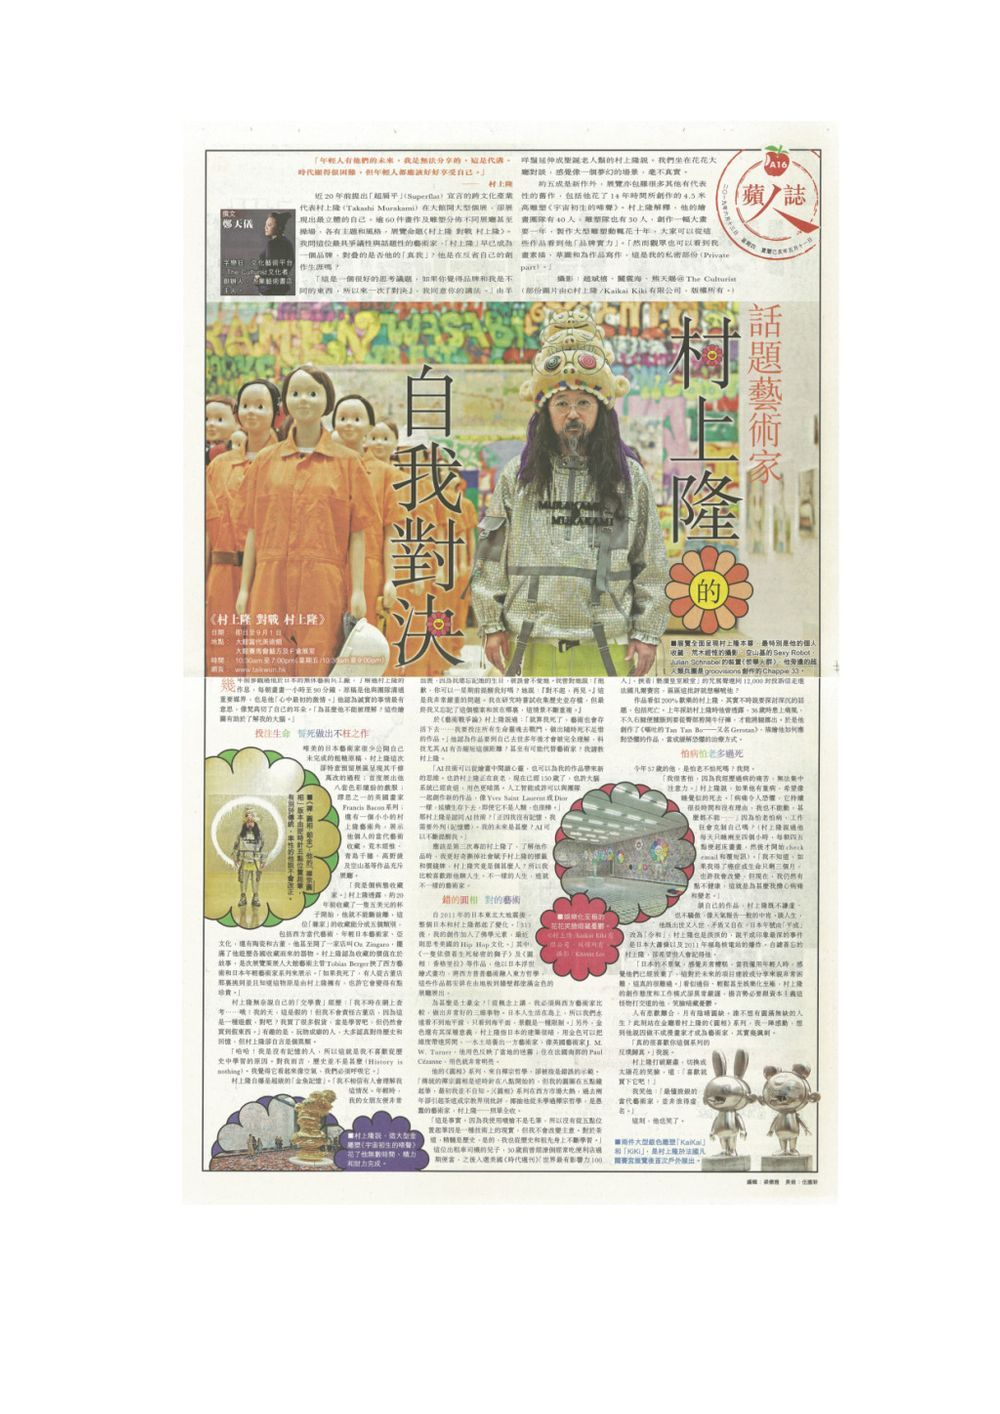 Apple Daily | Takashi MURAKAMI